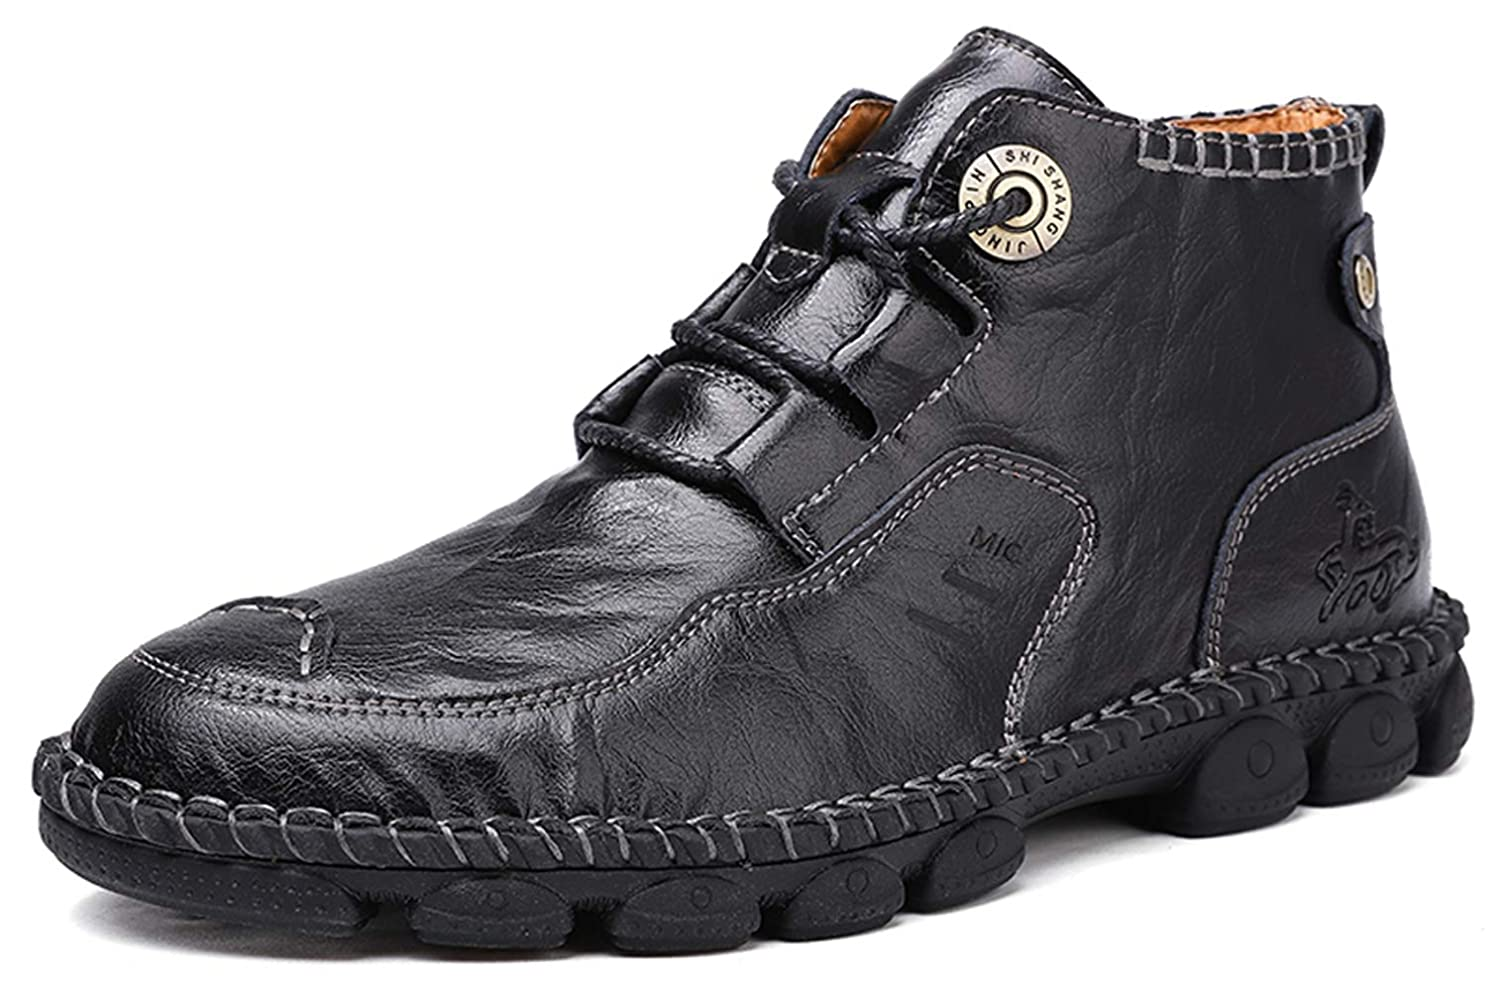 Mens Retro Shoes | Vintage Shoes & Boots Honeystore Mens British Martin Boots High-top Leather Motorcycle Shoes Lace-up Booties $45.99 AT vintagedancer.com